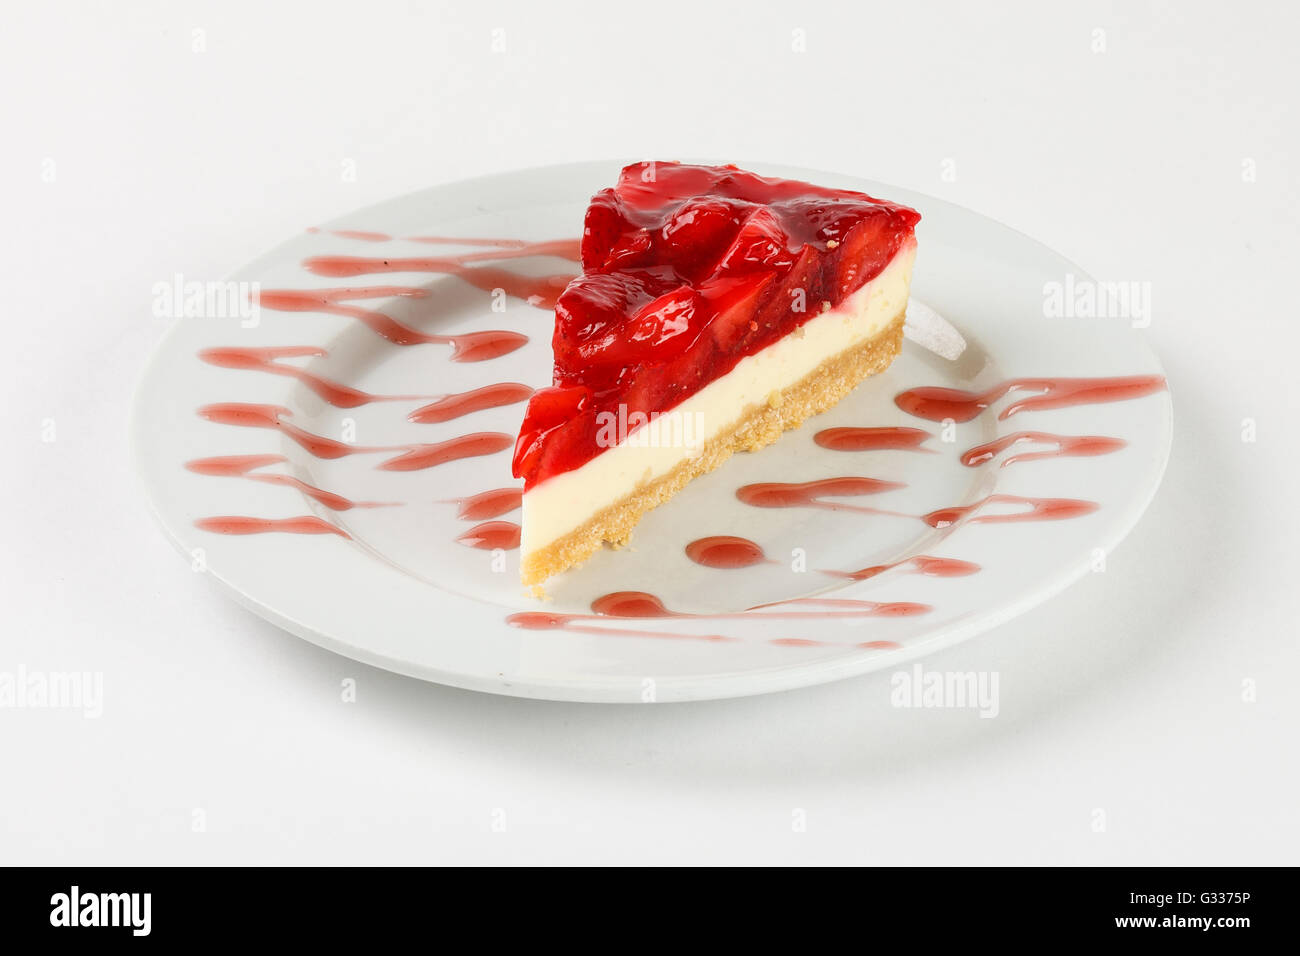 Delicious cheesecake with strawberry jelly and jam on the plate on white background. Close up side view. - Stock Image